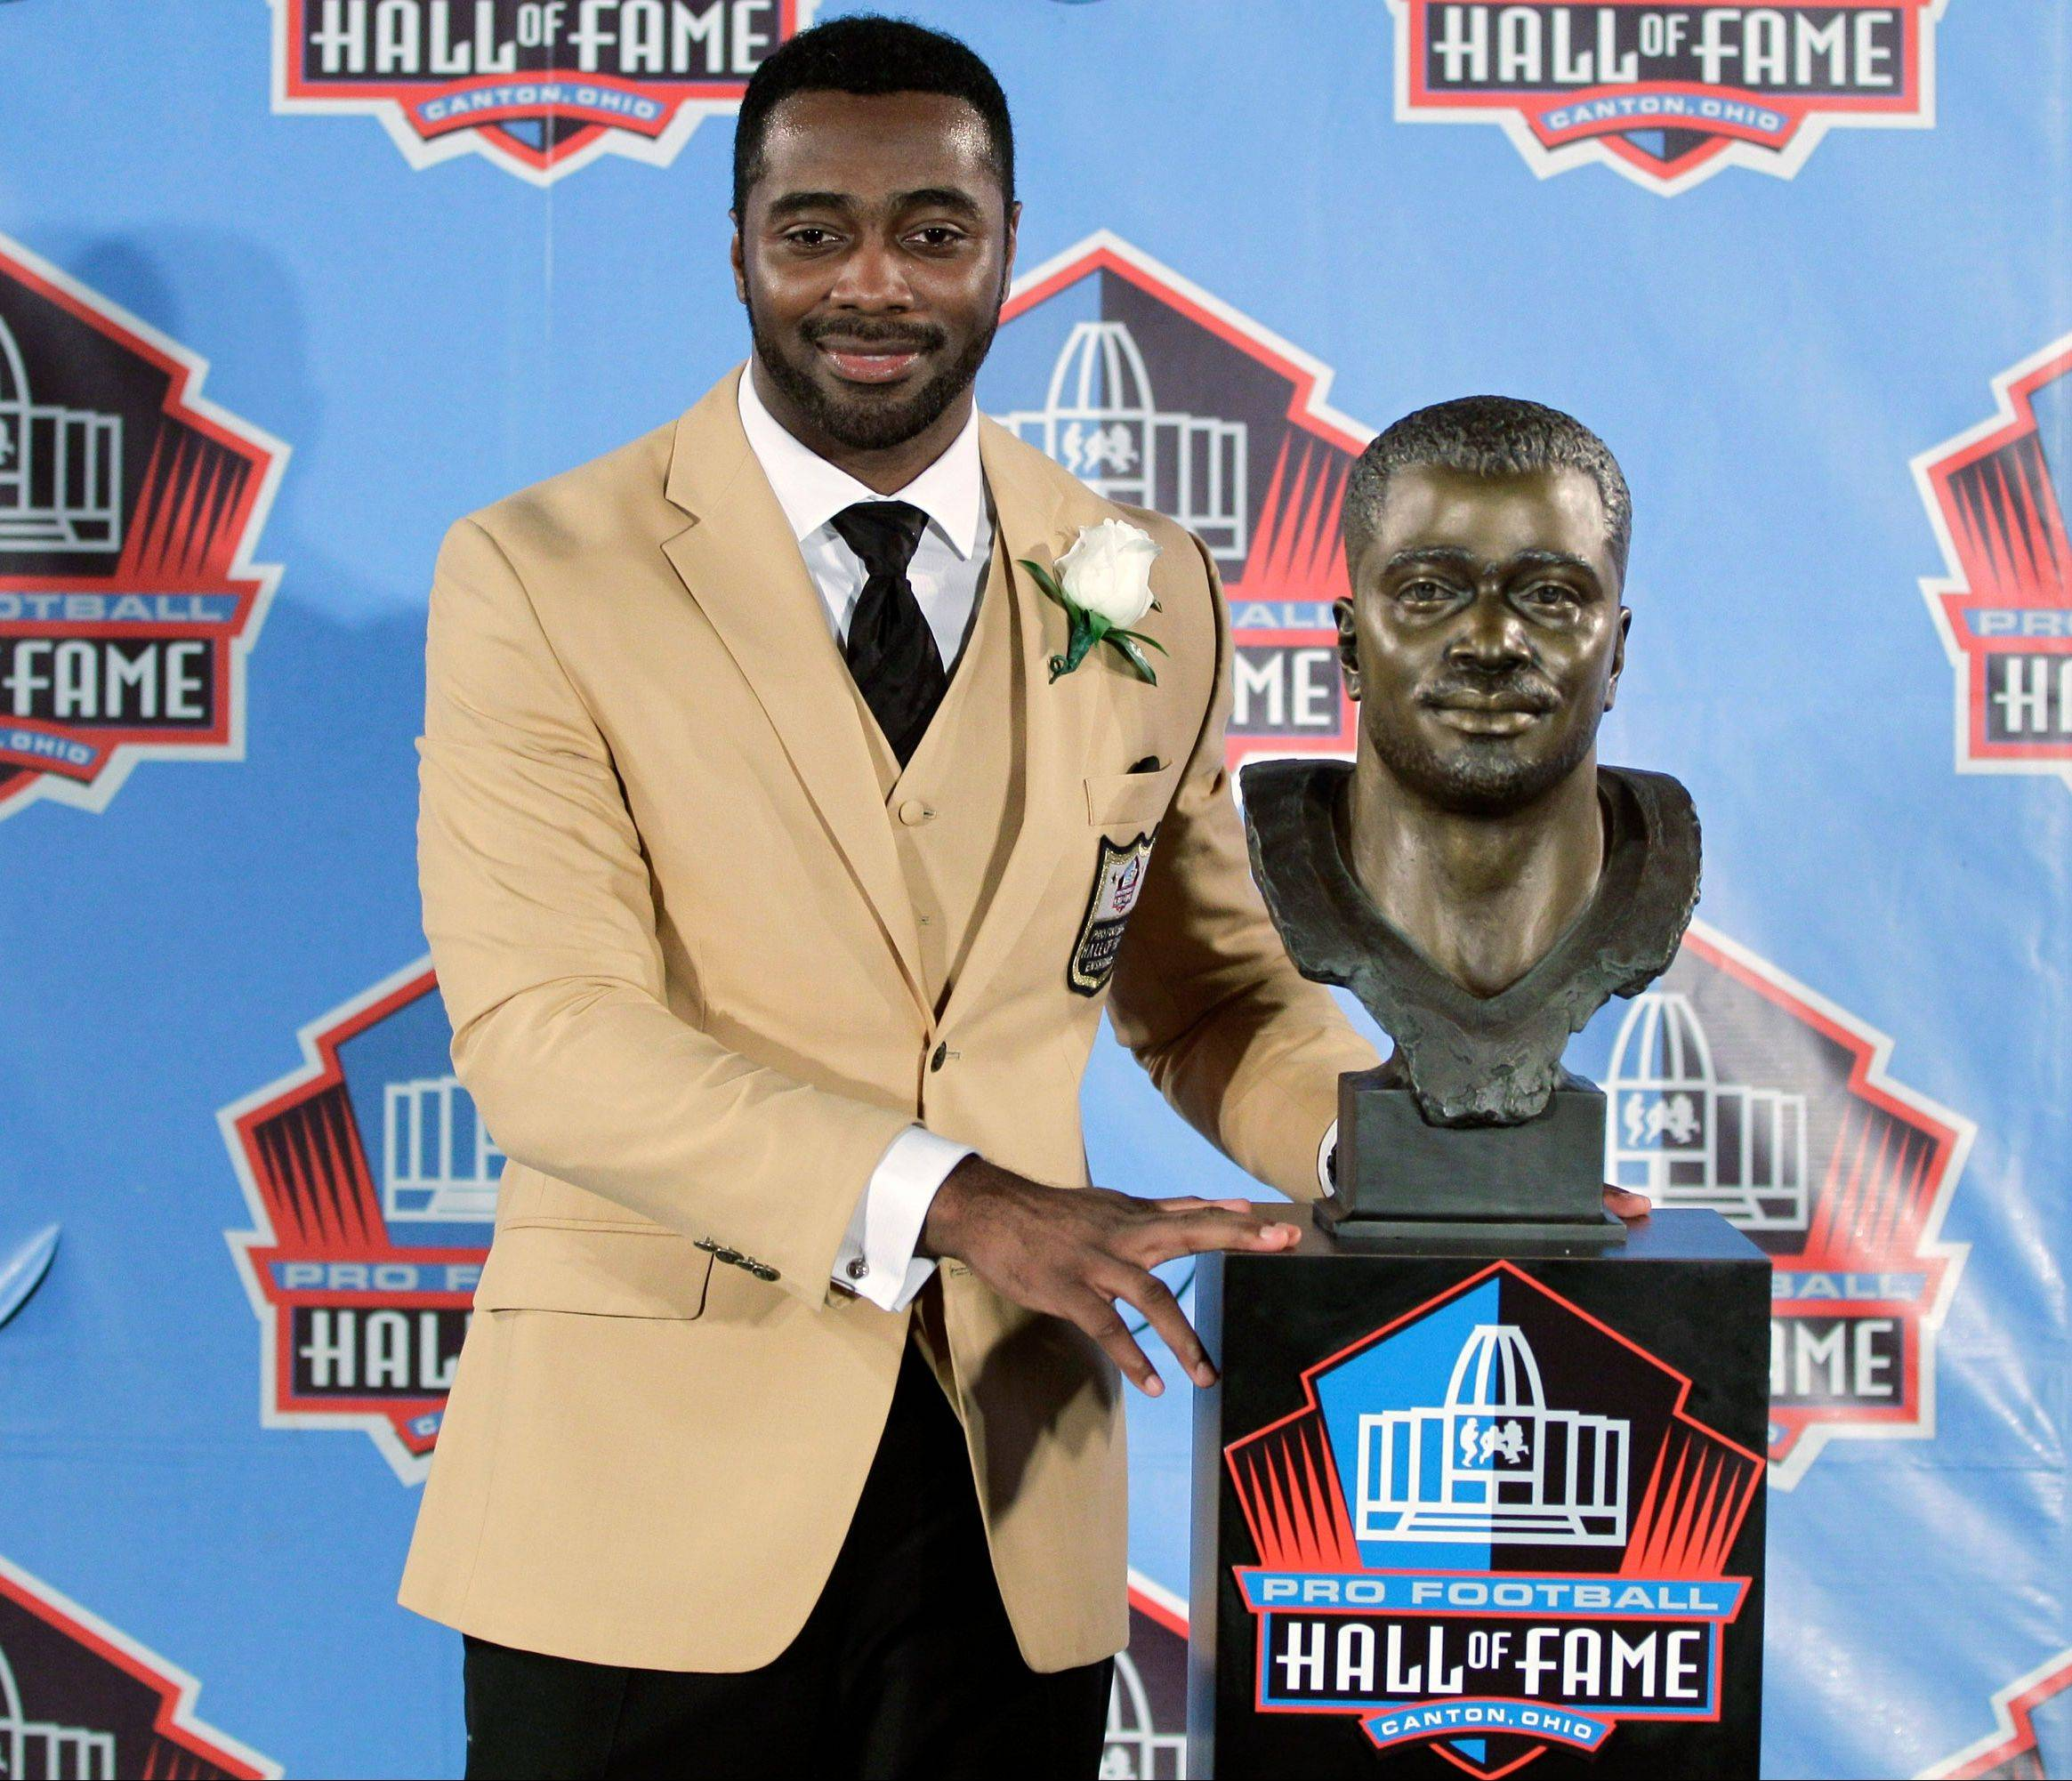 Curtis Martin poses with a bust of himself during induction ceremonies Saturday at the Pro Football Hall of Fame.